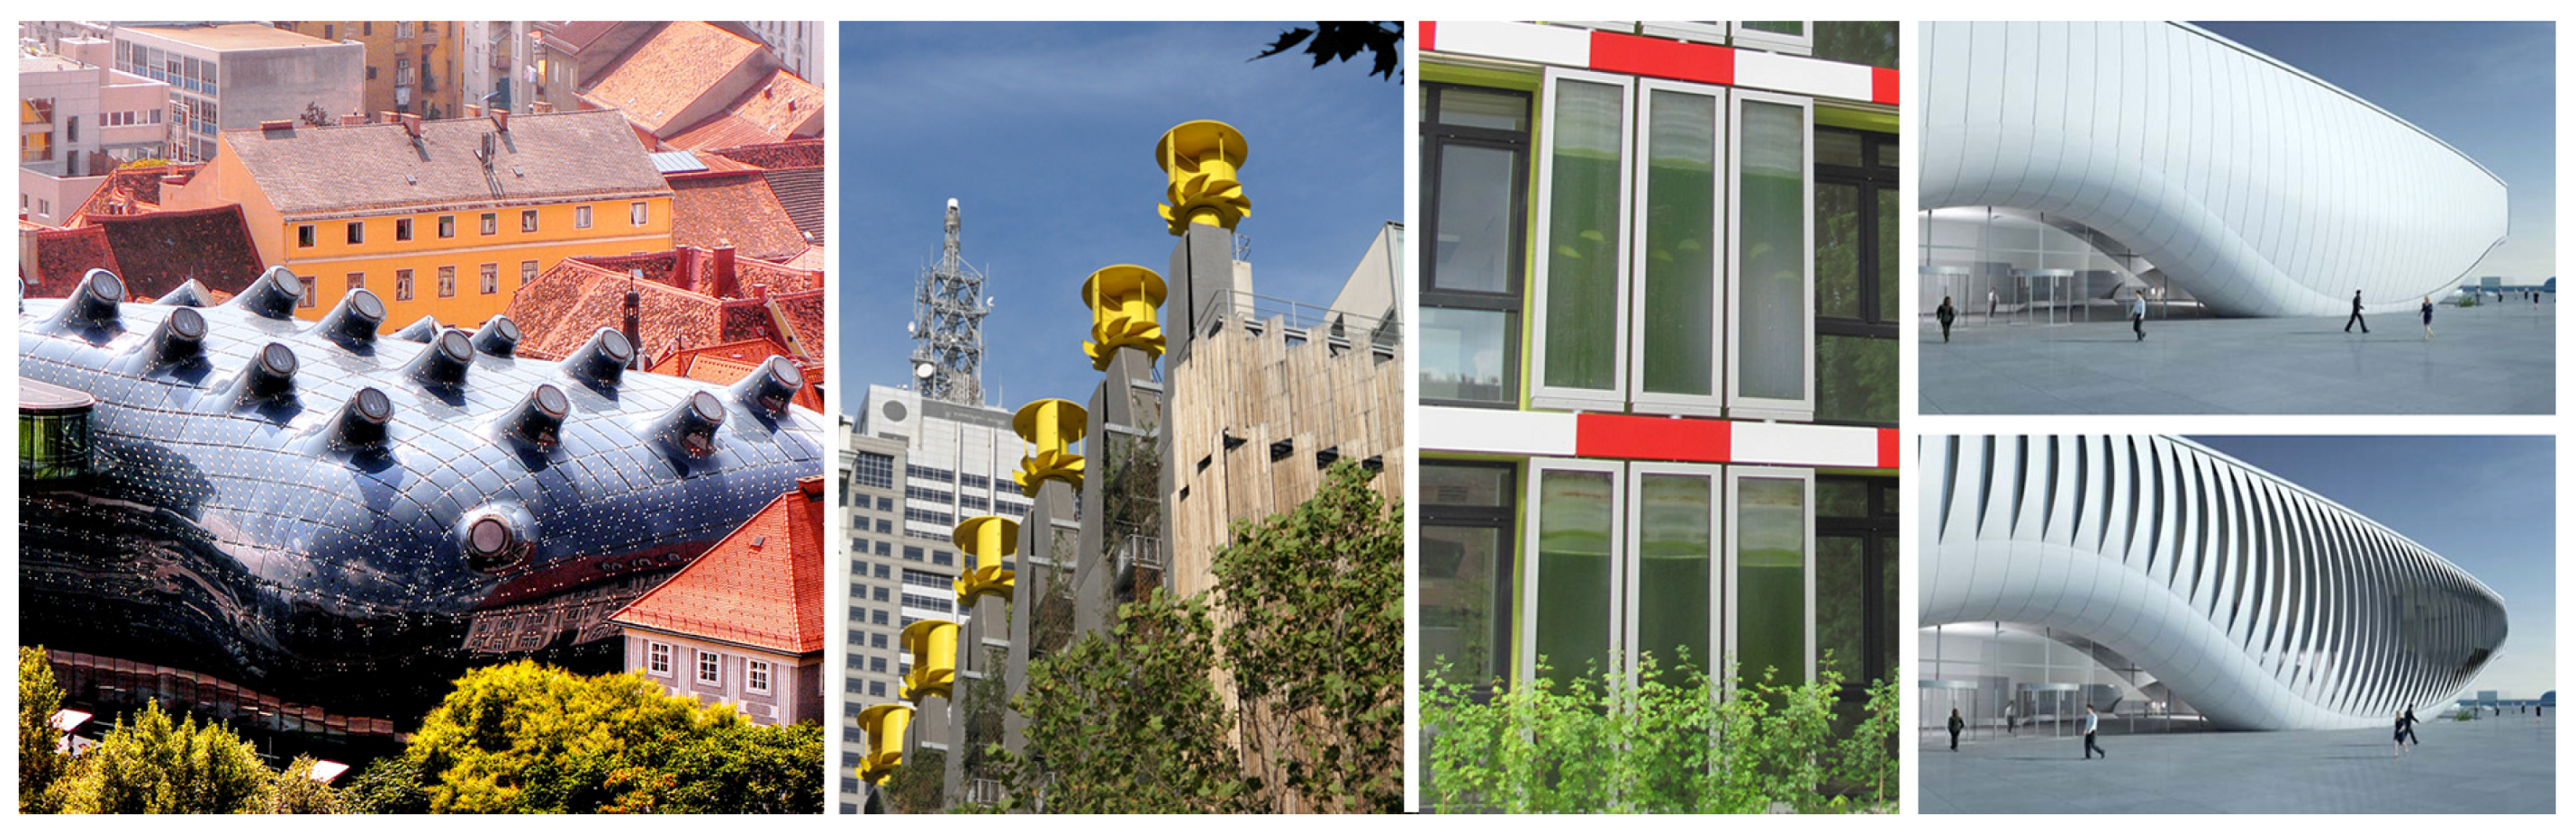 Buildings | Free Full-Text | Form Follows Environment: Biomimetic ...